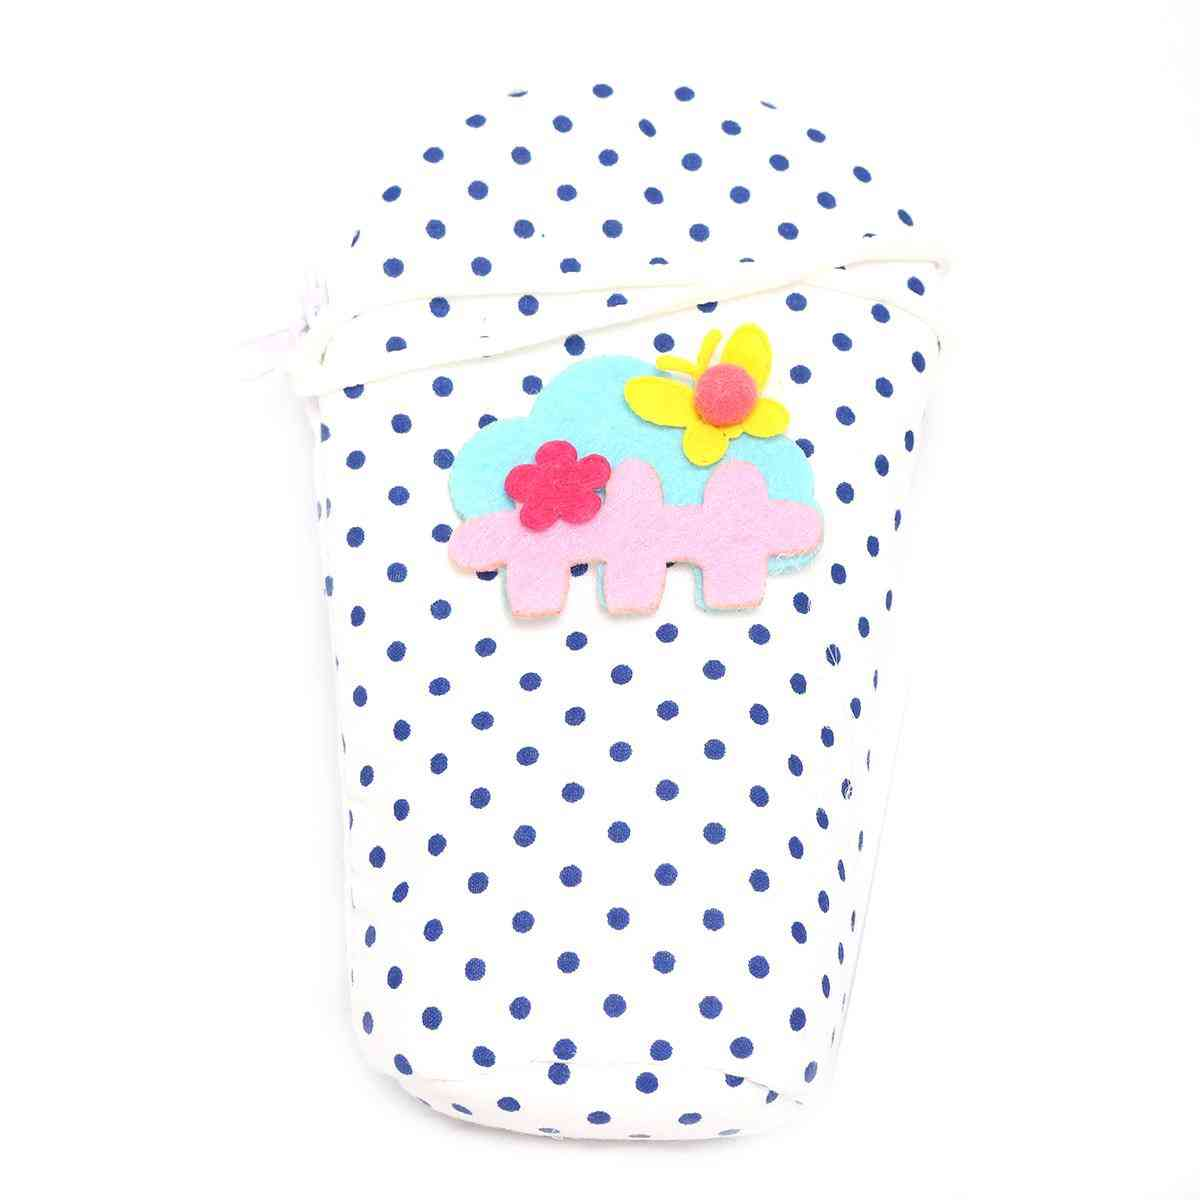 Vitamin Baby Cartoon Character 7x4 Inches Feeder Cover for Feeder Bottle with String  Blue & Blue